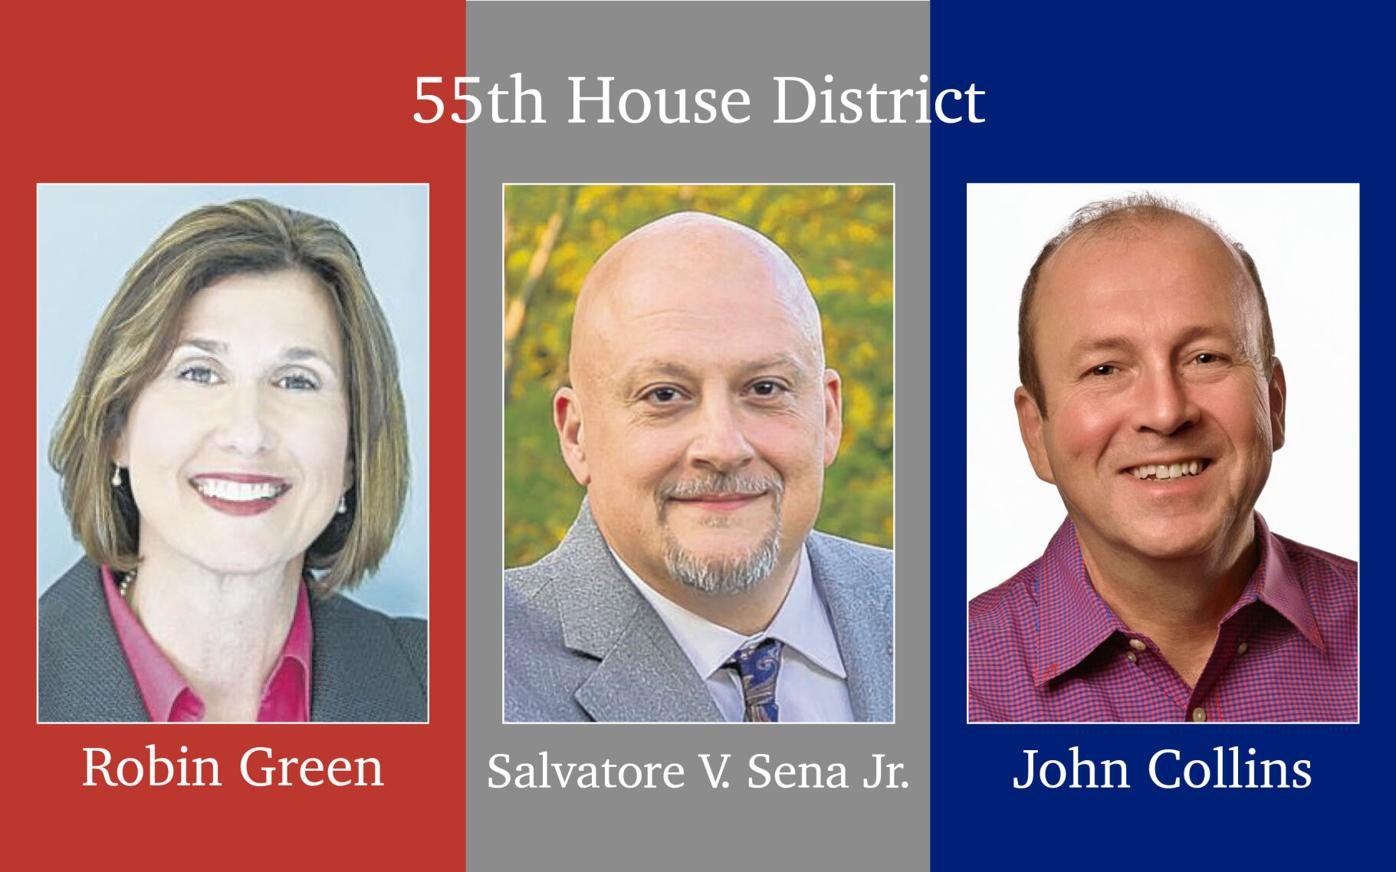 55th house district candidates / wrap